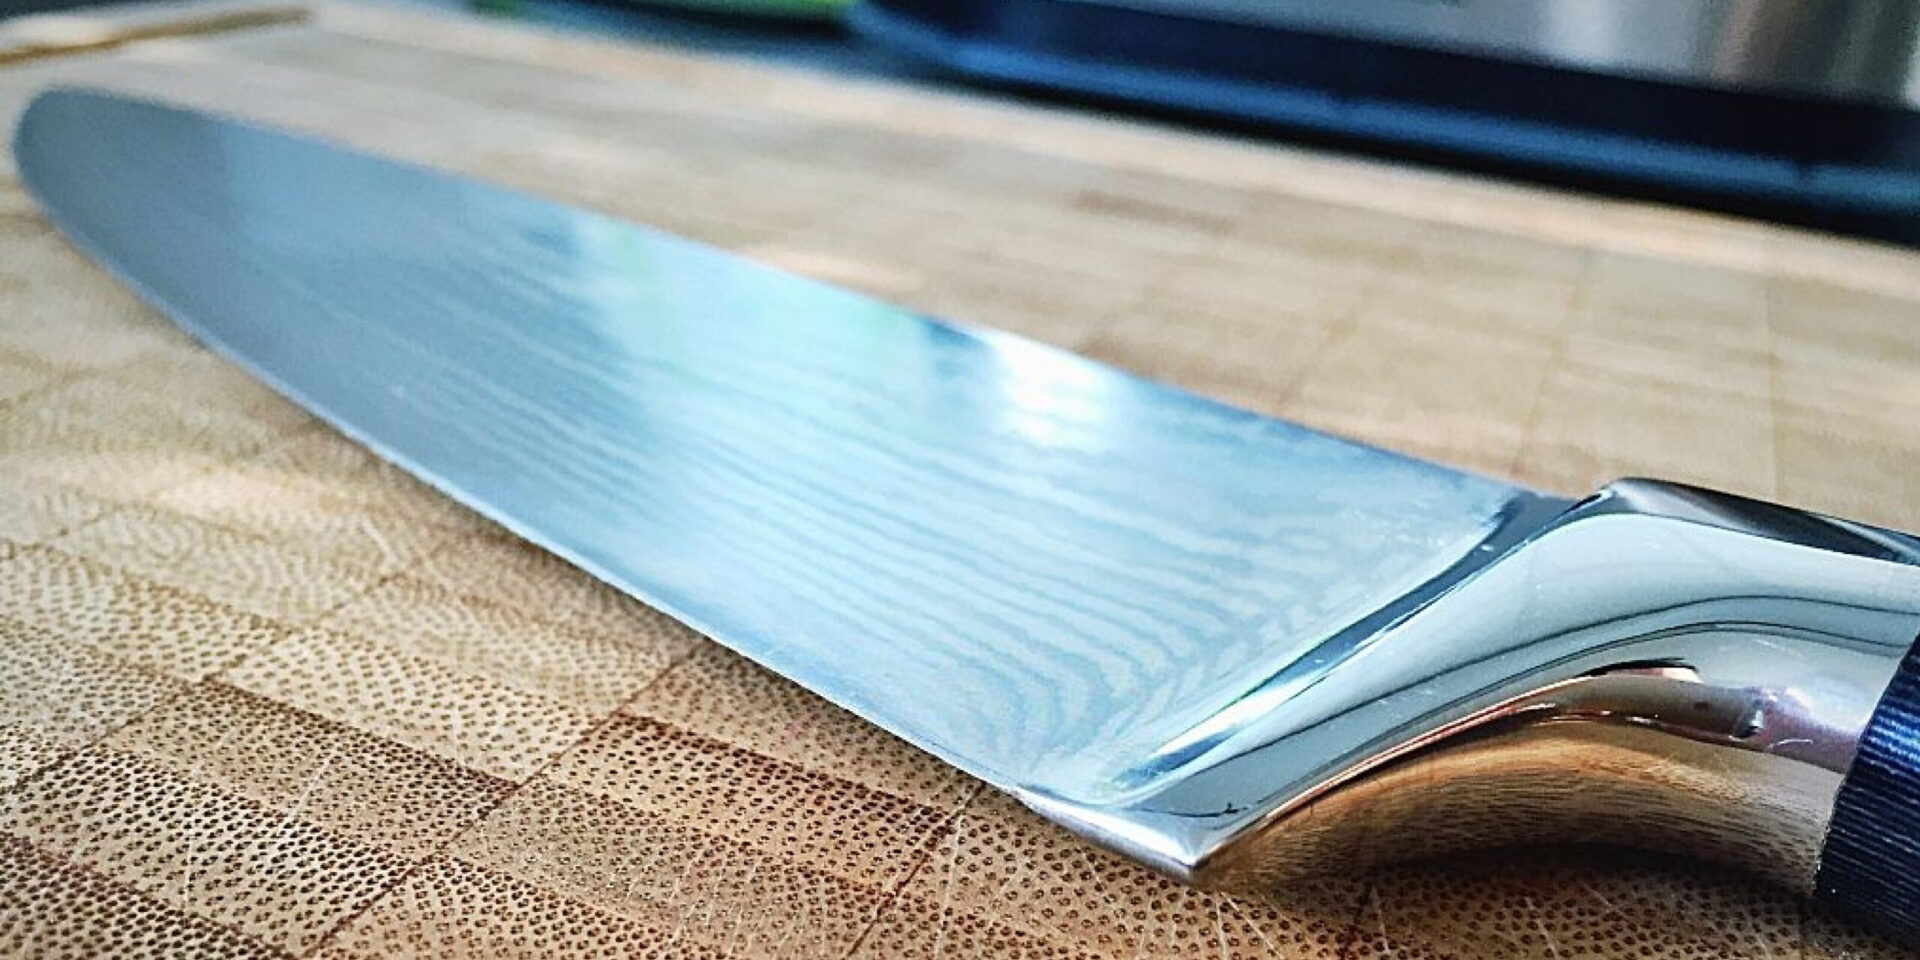 Top Six Best Japanese Kitchen Knives In 2021